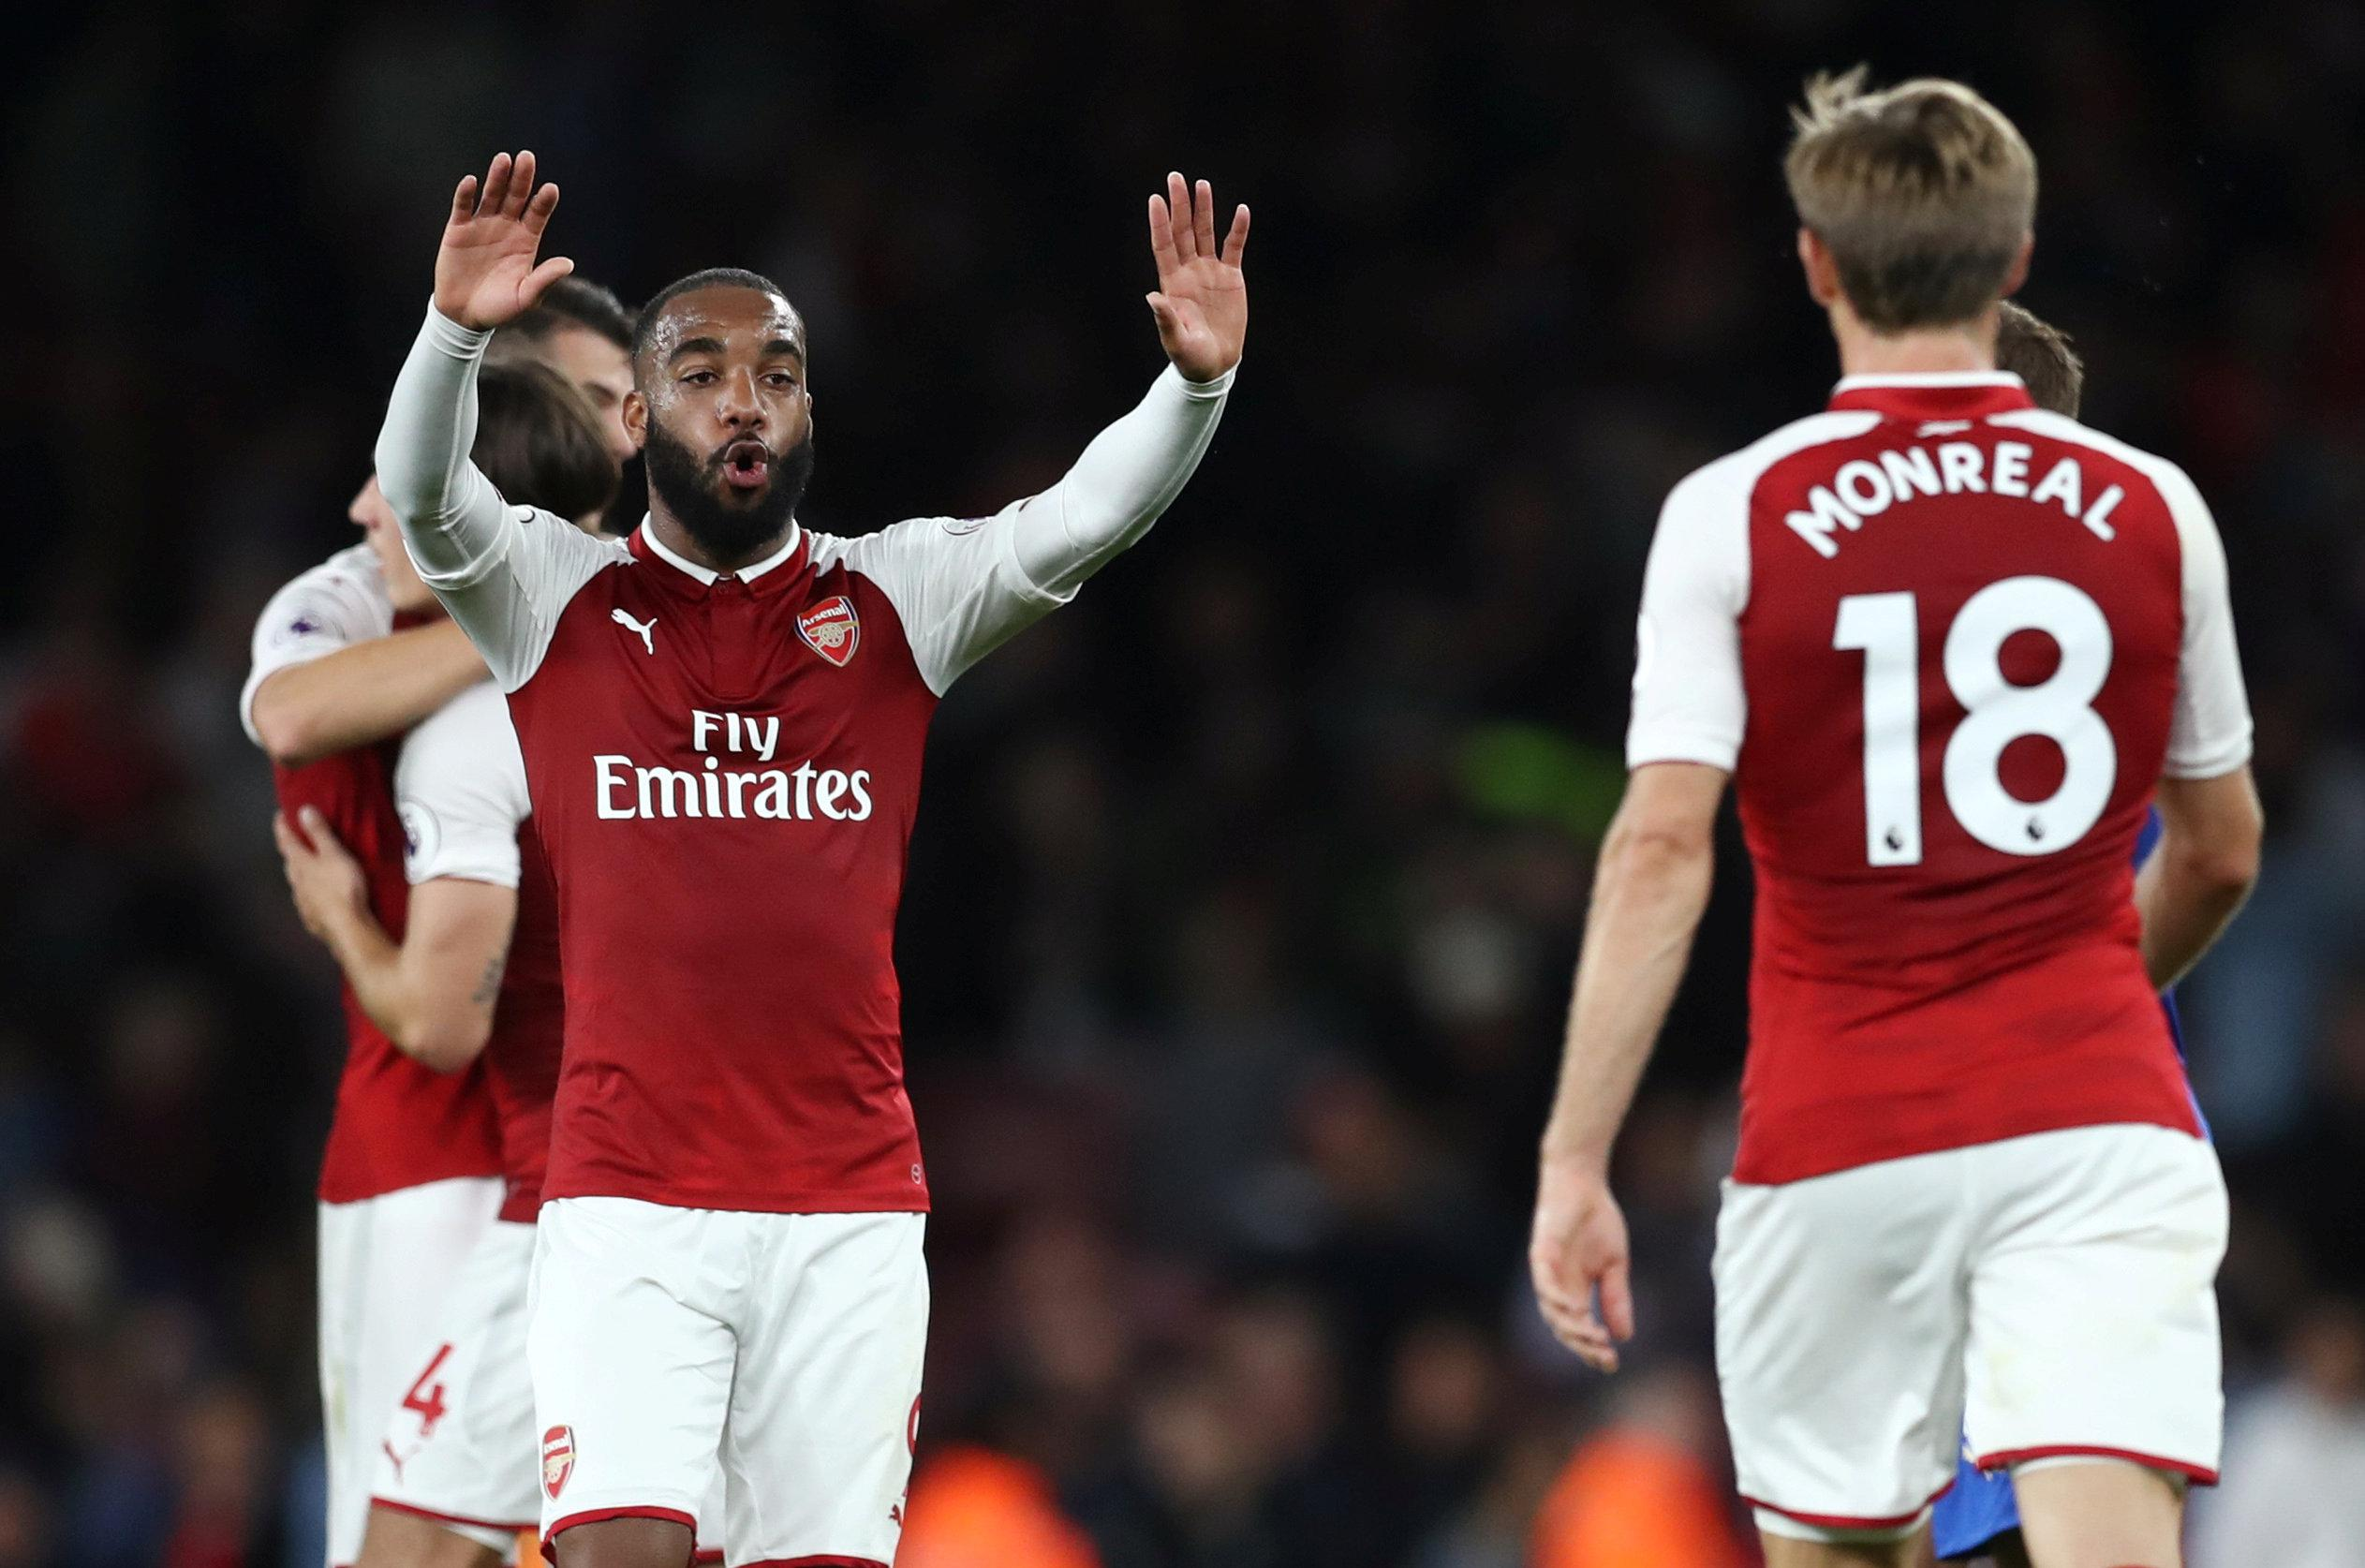 Arsenal new boy Alexandre Lacazette scored the Premier League's first goal of the new season